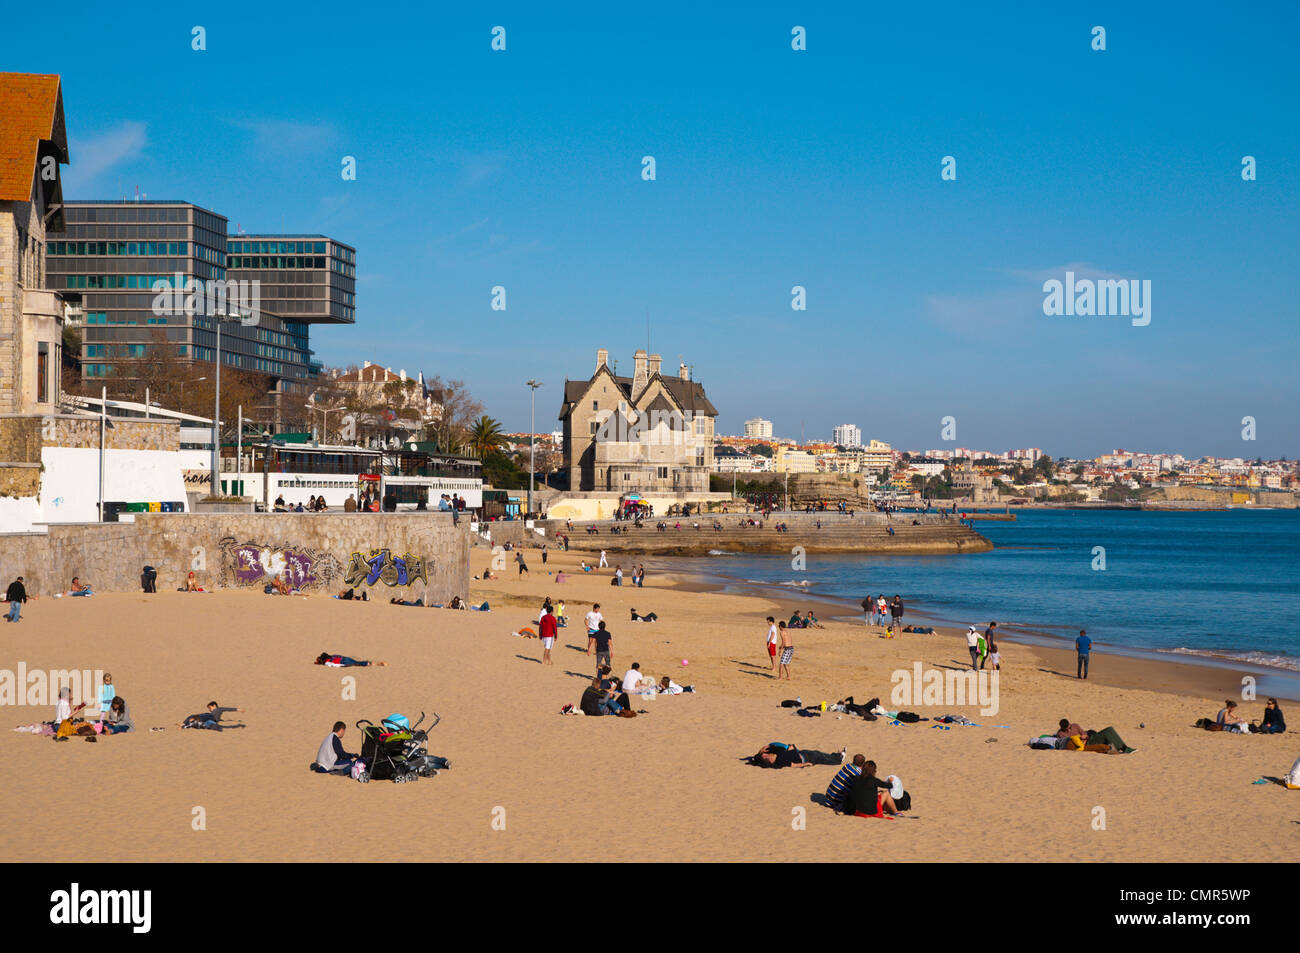 Praia de Conceicao beach Cascais coastal resort near Lisbon Portugal Europe - Stock Image